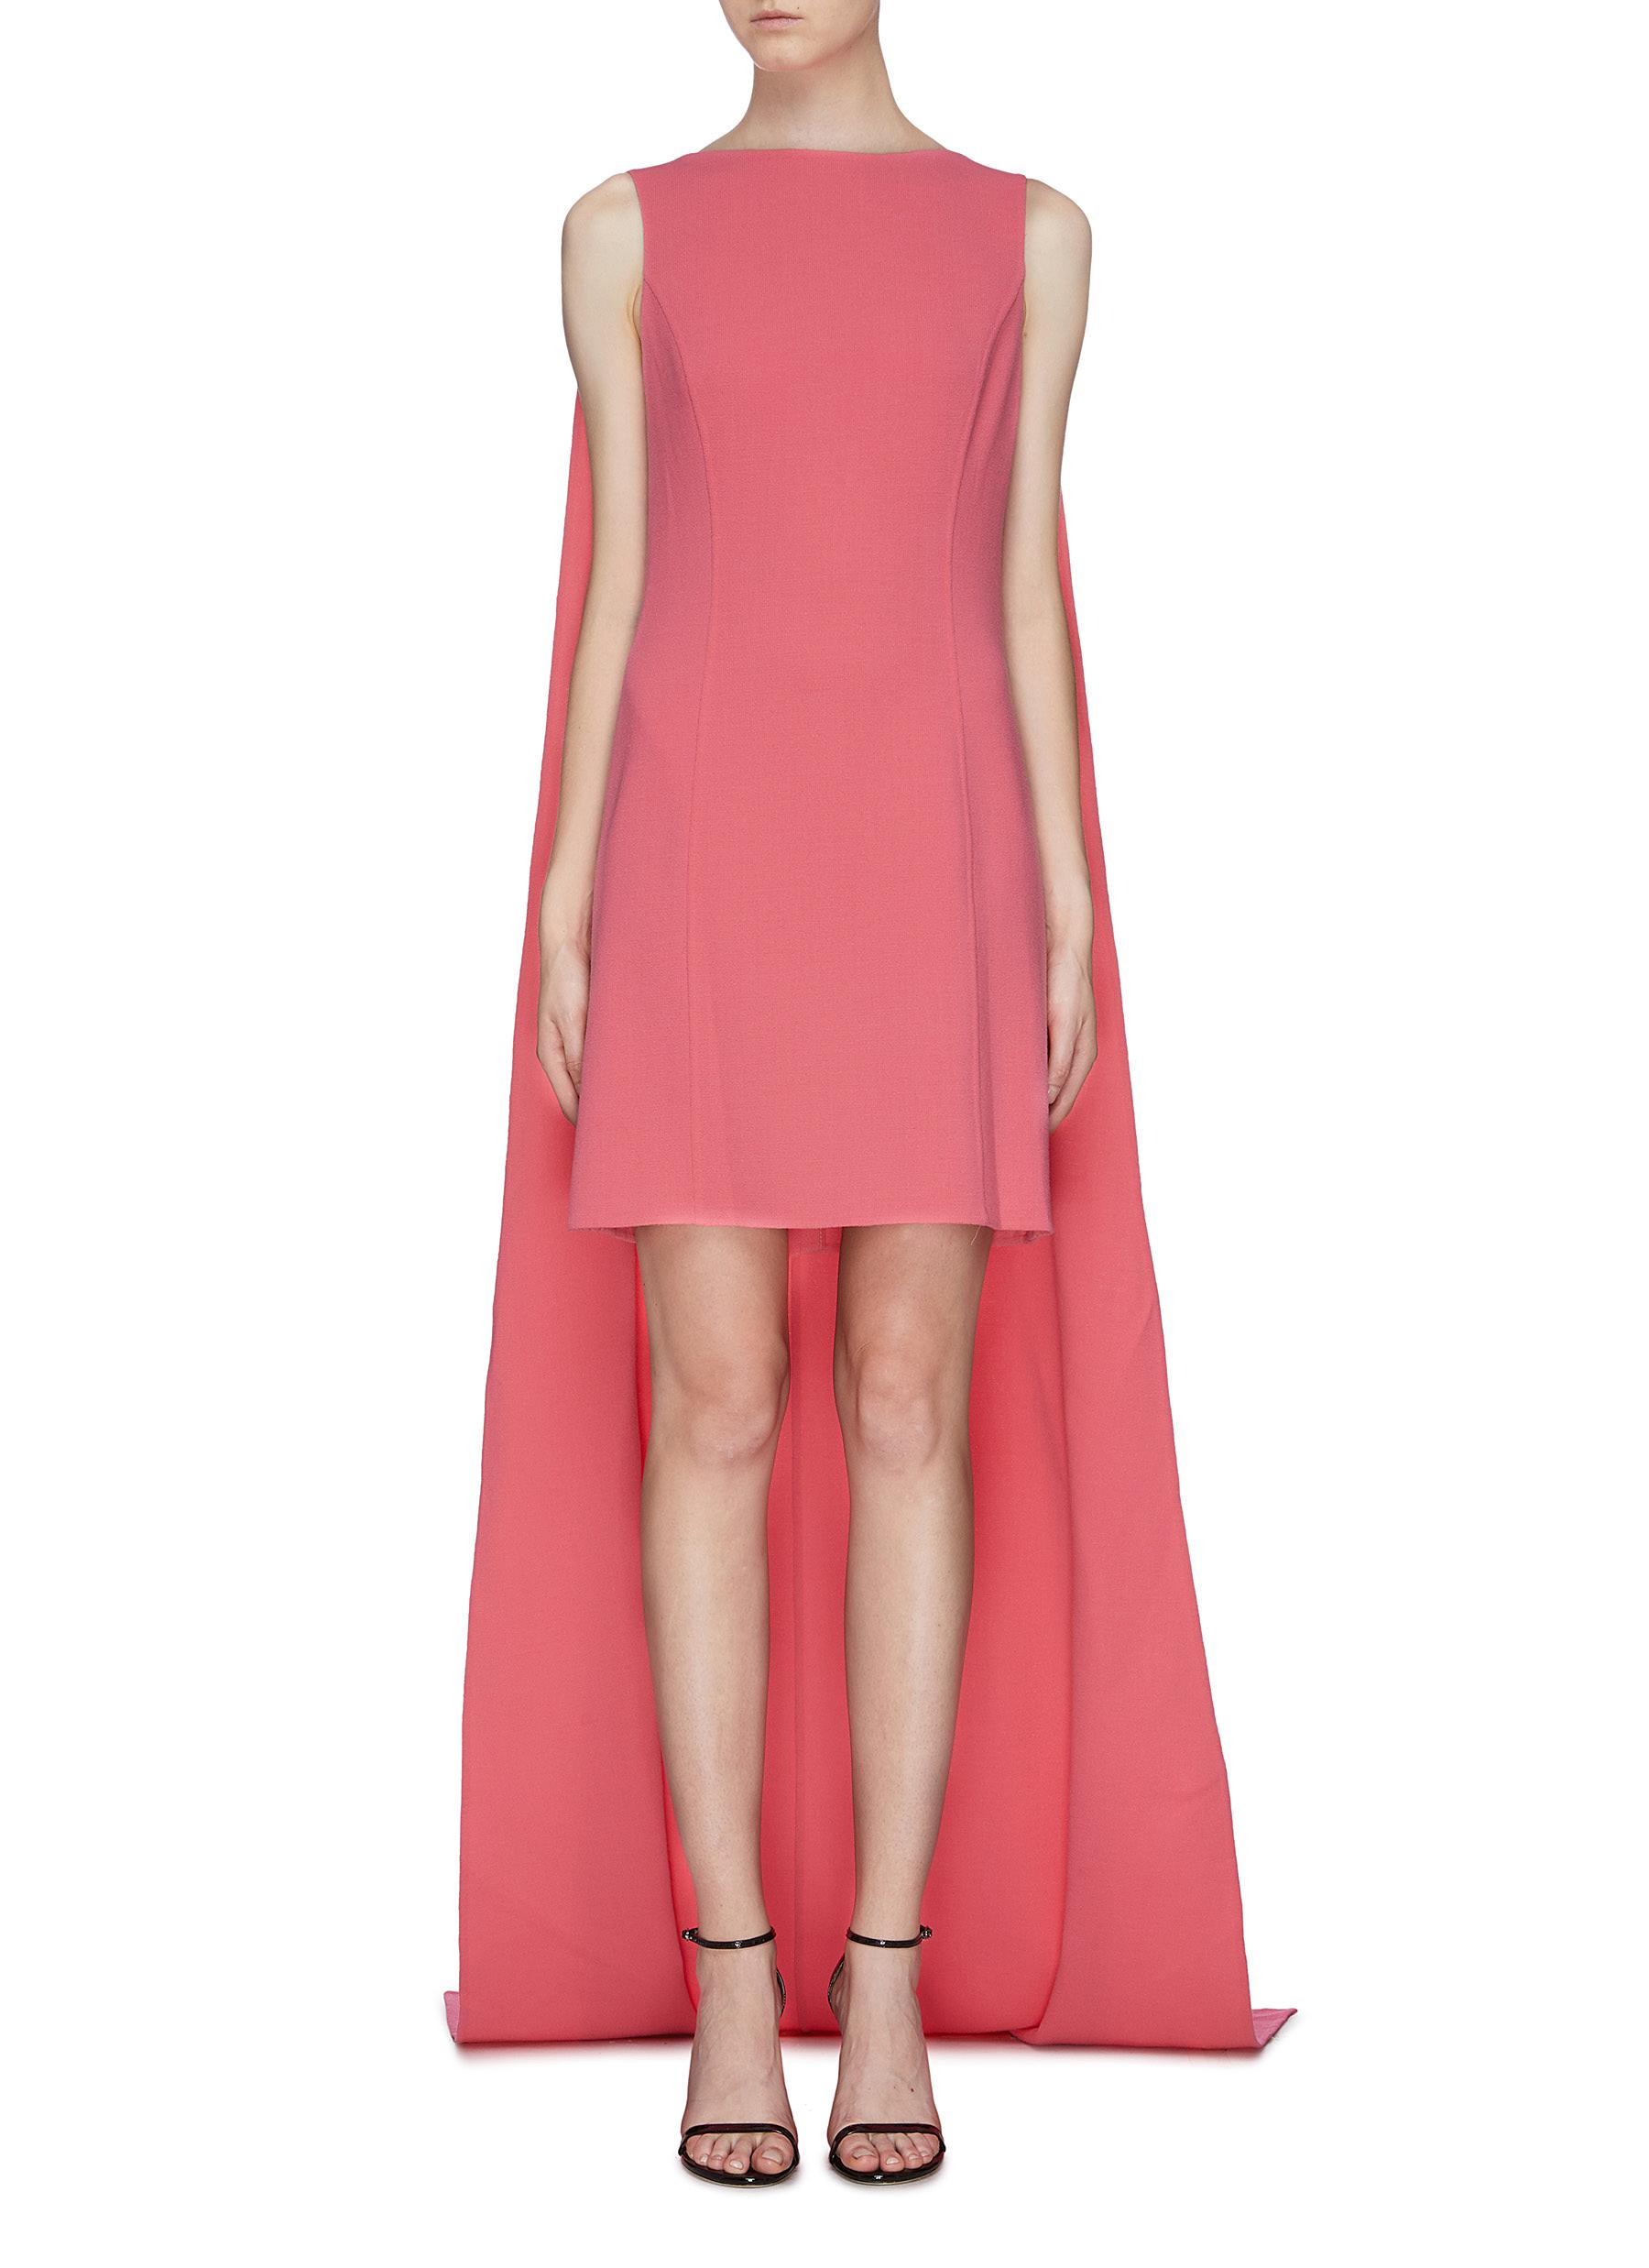 Sleeveless cape dress by Oscar De La Renta